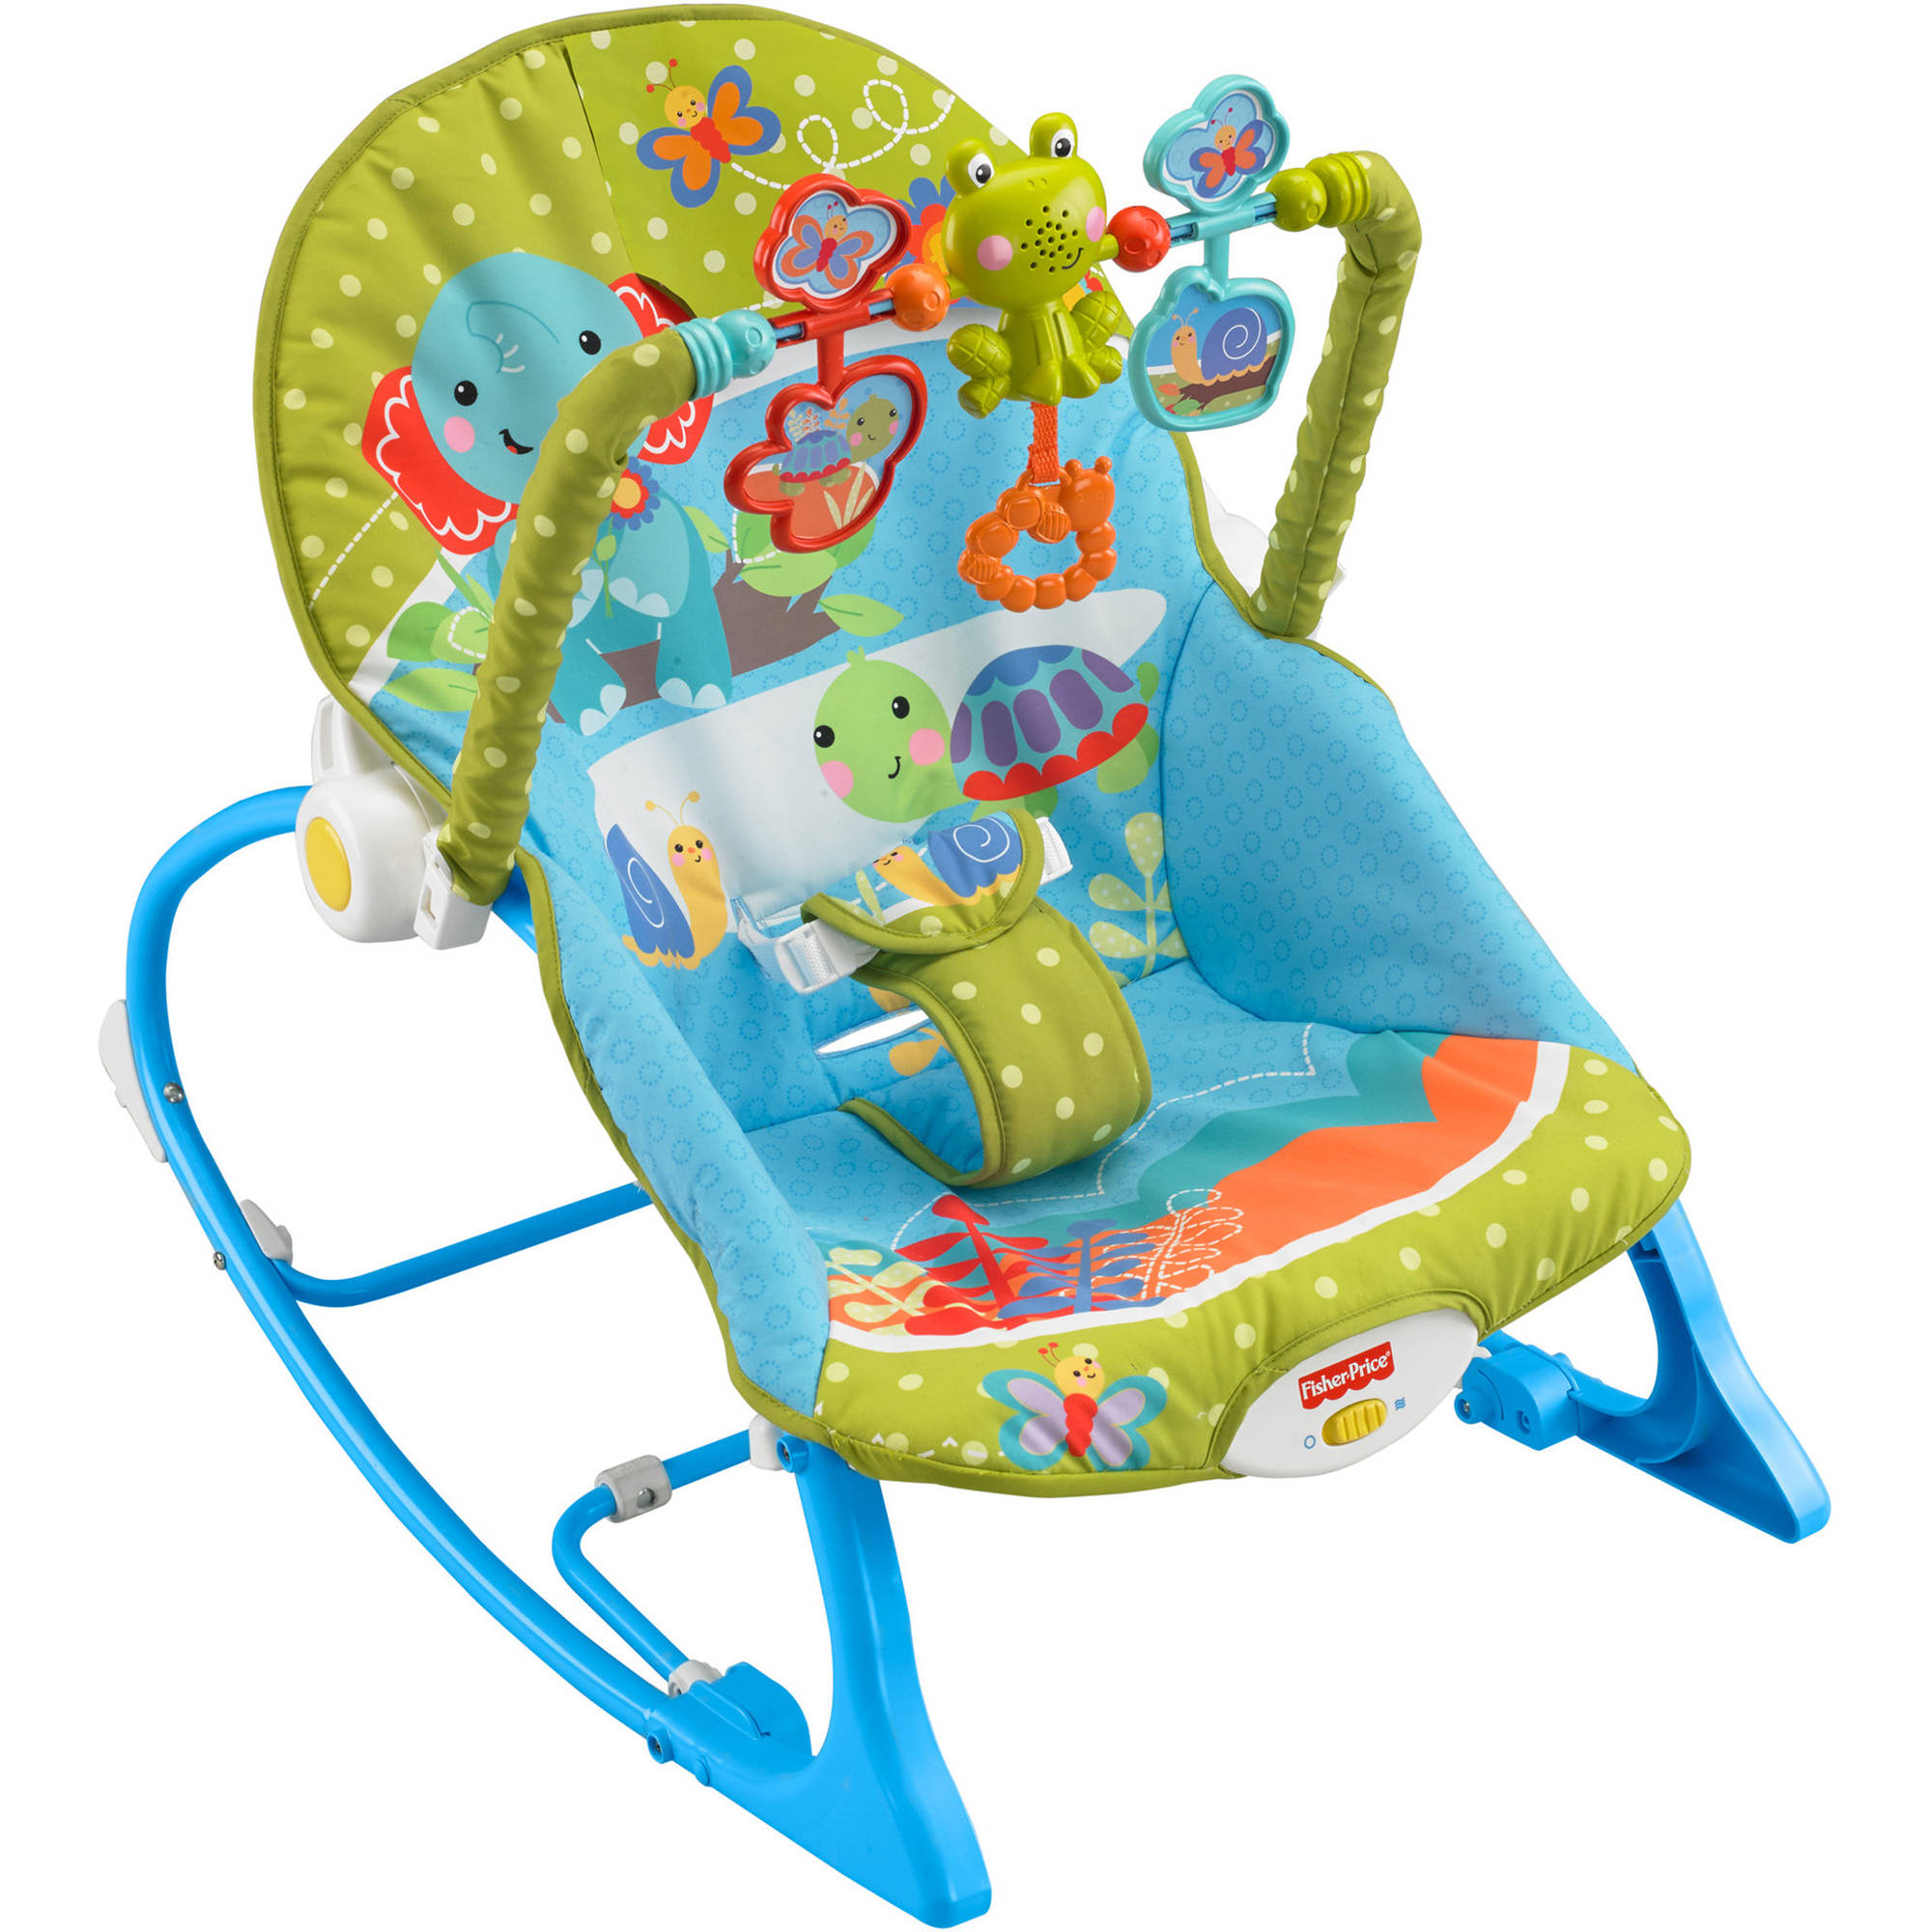 Baby bath chair walmart - Baby Bath Chair Walmart 50